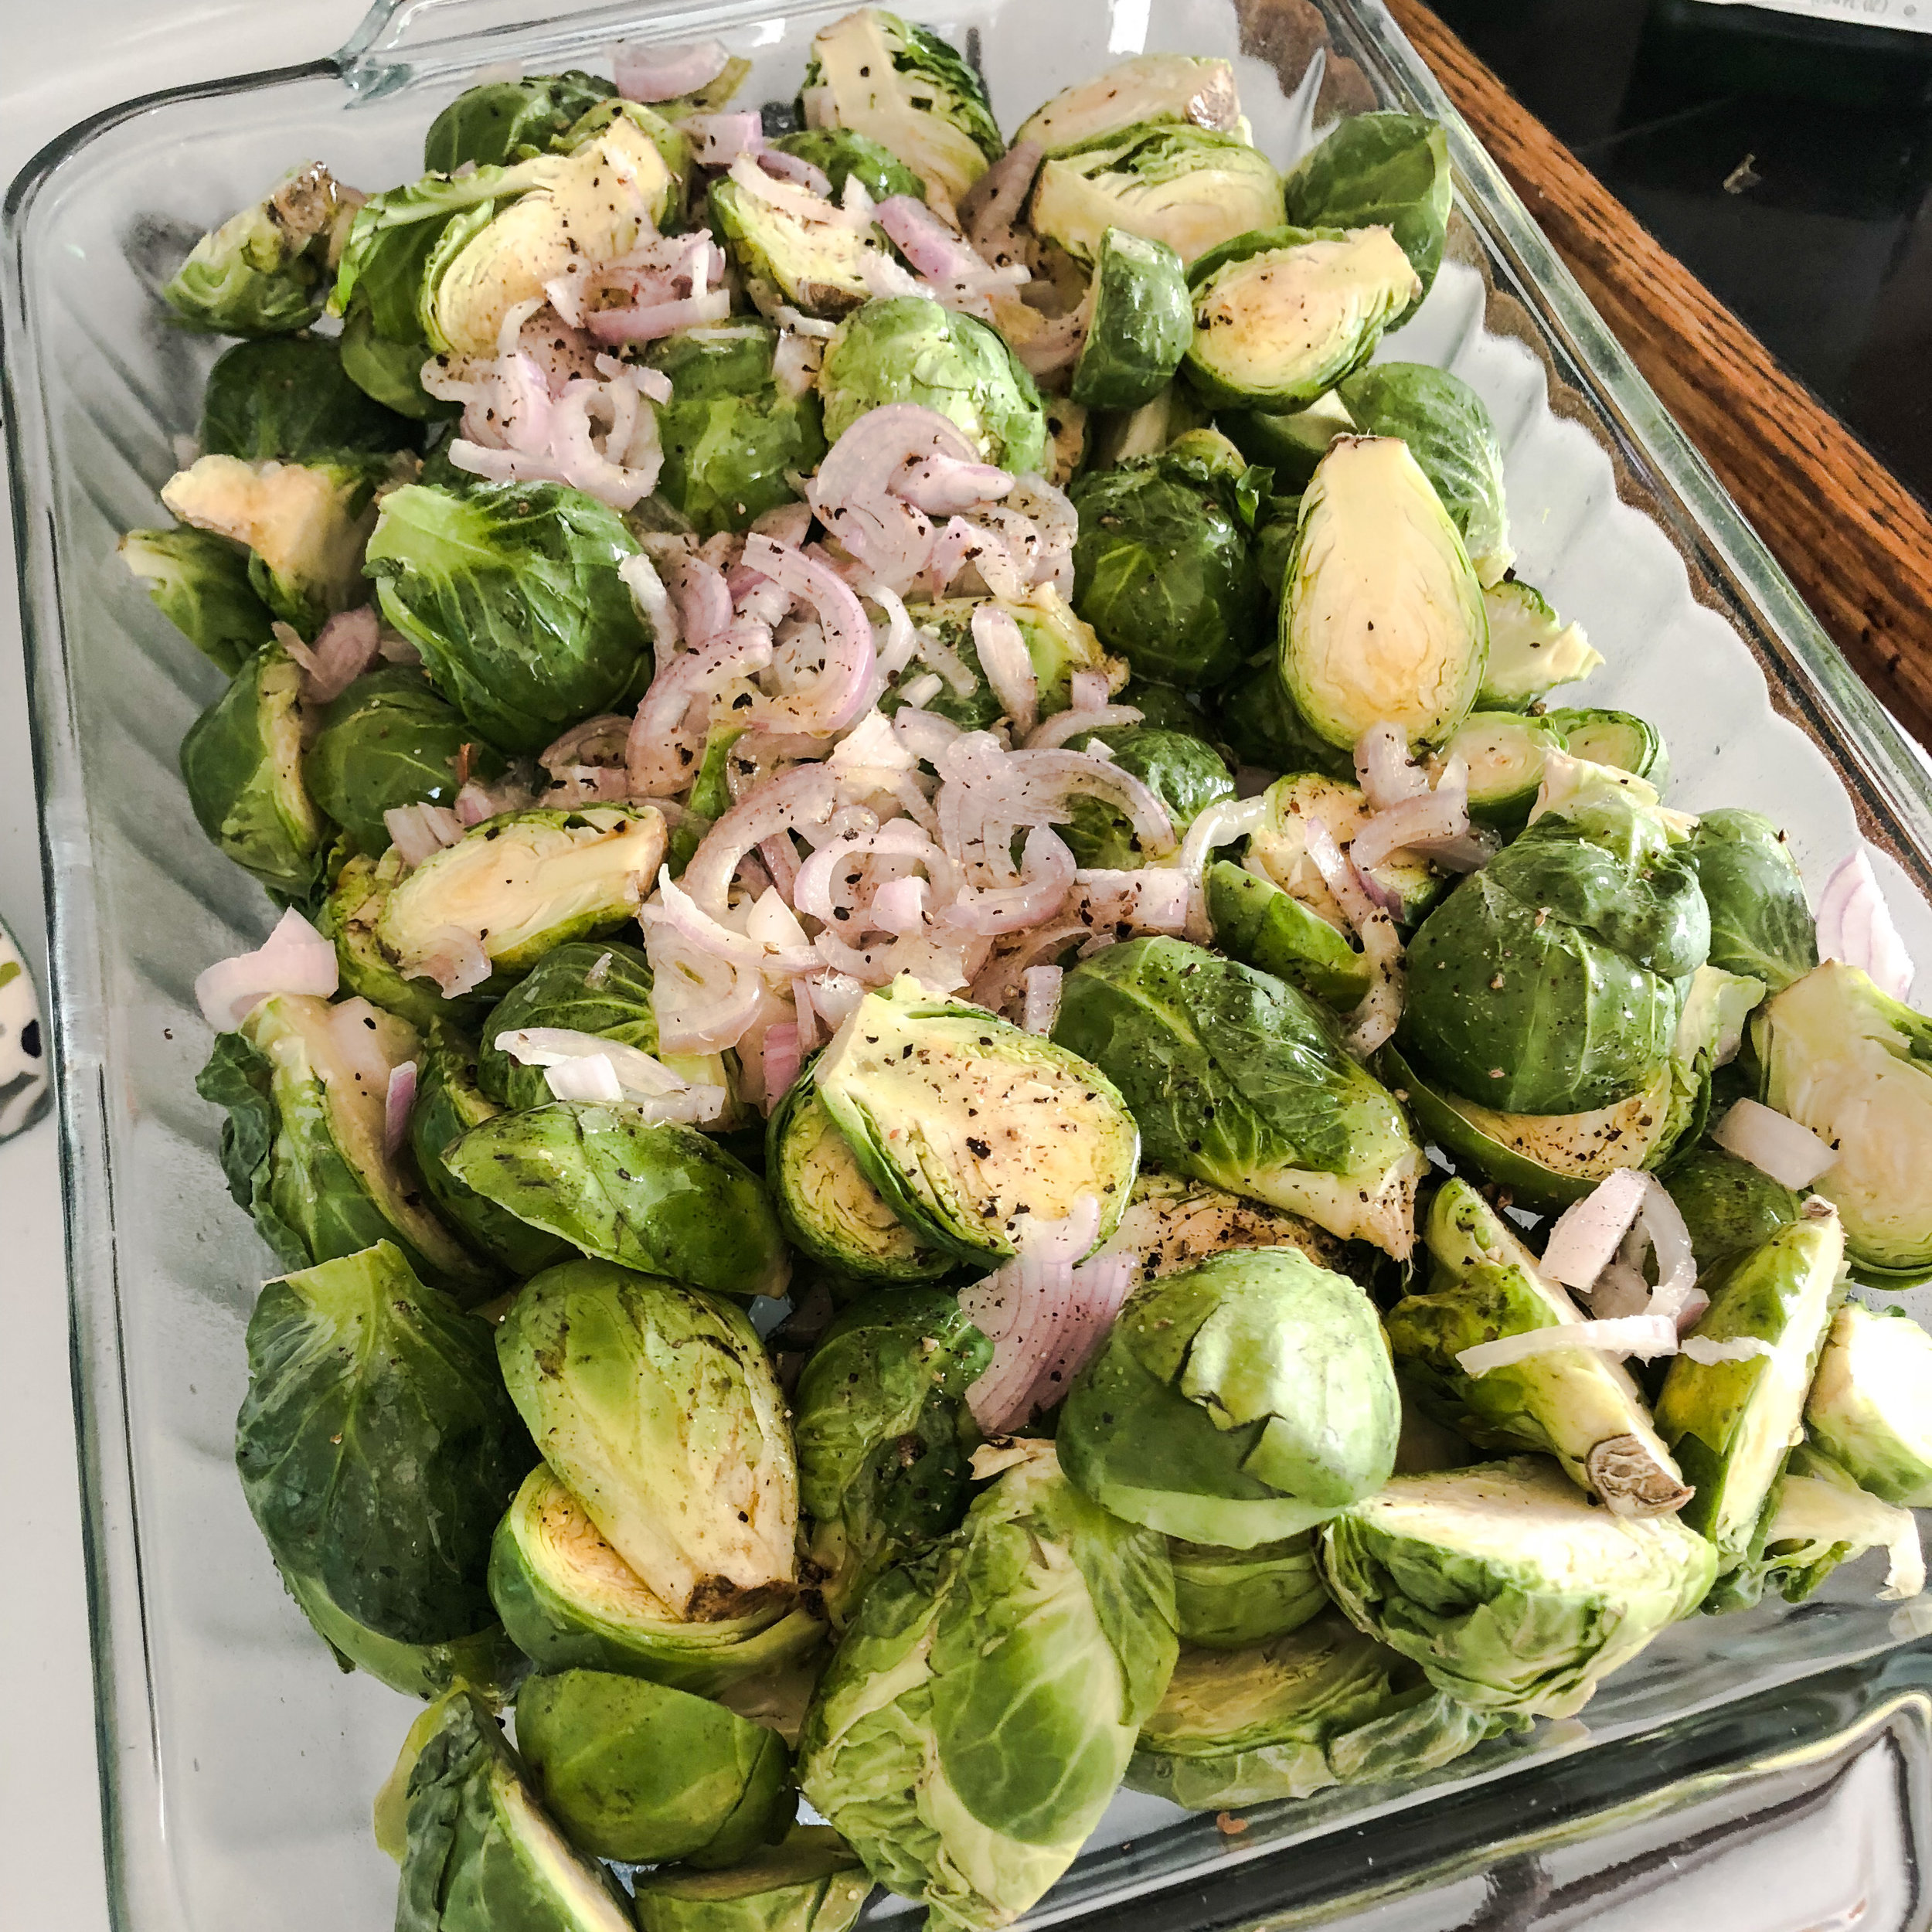 Step 1: 3lbs of halved Brussels sprouts, 3 shallots sliced thin, olive oil, salt and pepper. Roast at 425 for 15 minutes, stir halfway through.